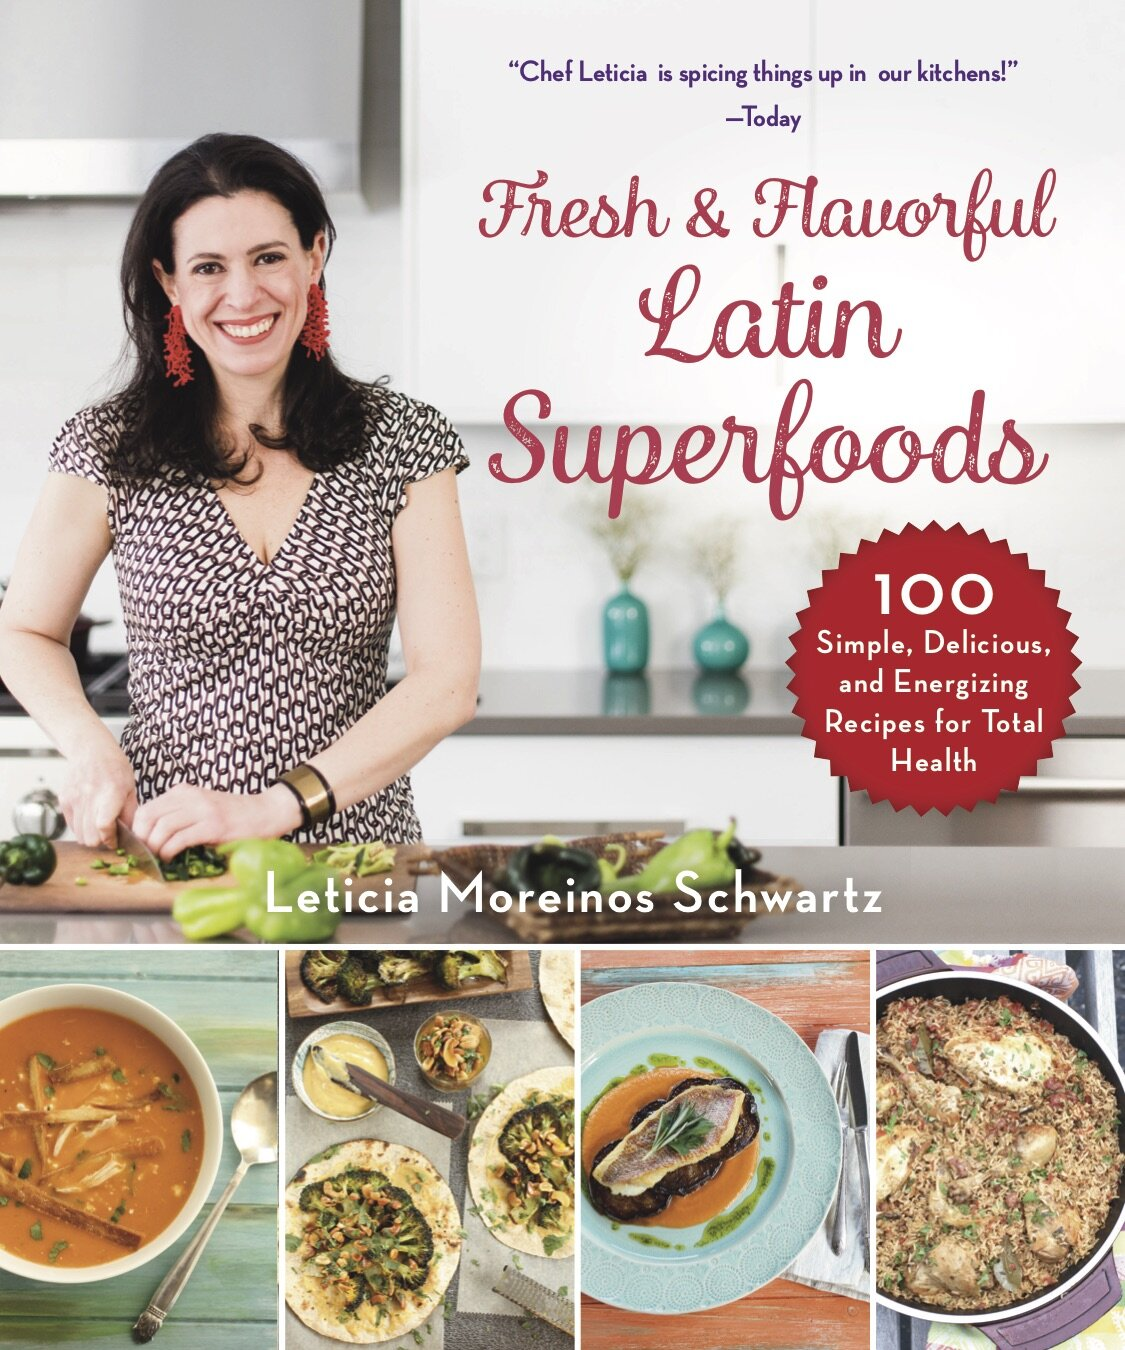 2nd_Pass_Proof_Only_LatinSupperfood_v4 copy.jpg